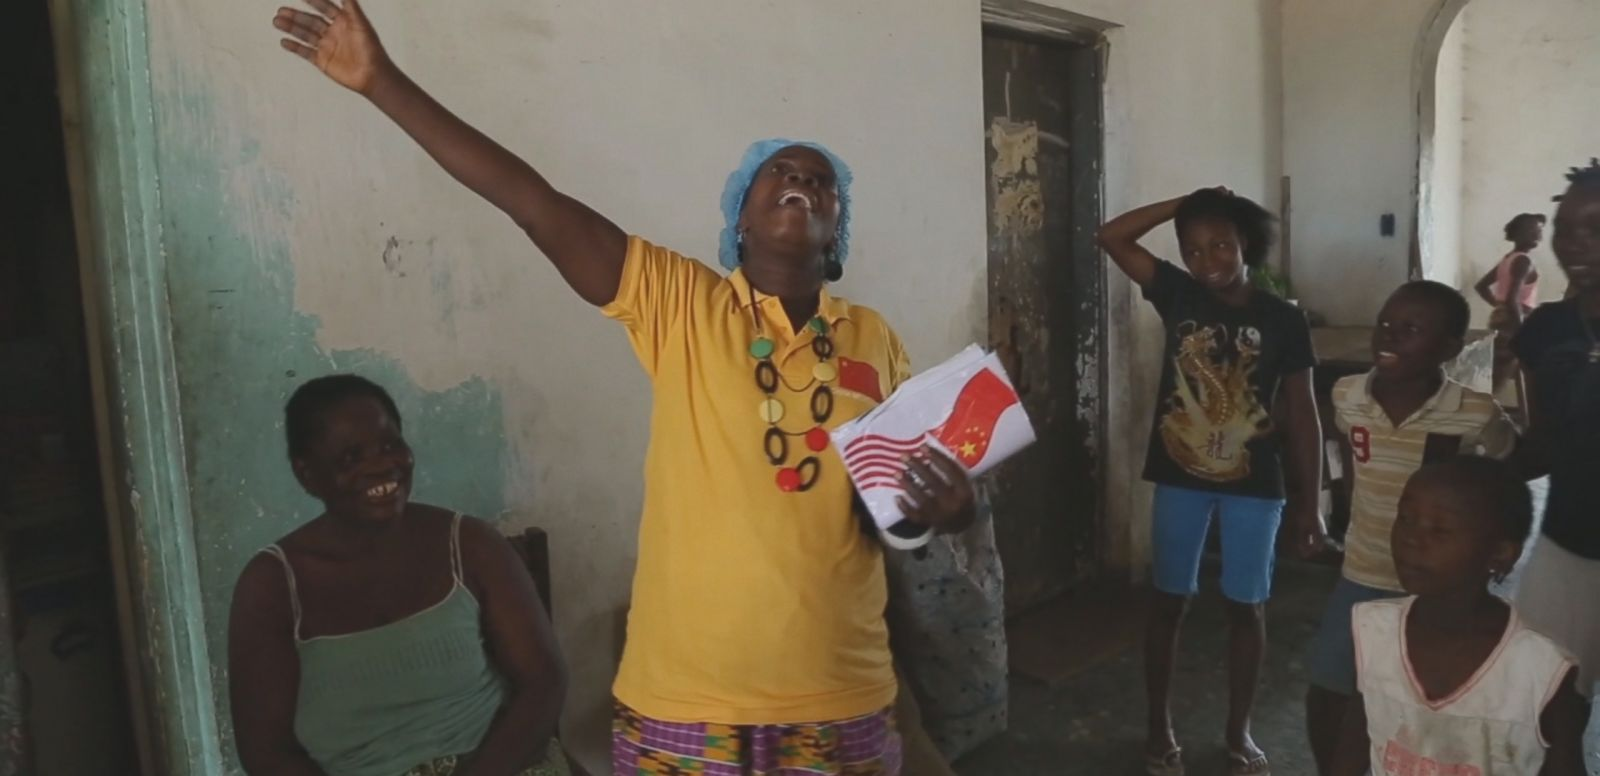 VIDEO: Beatrice Yardolo was greeted by her family after 16 days in an Ebola treatment unit.